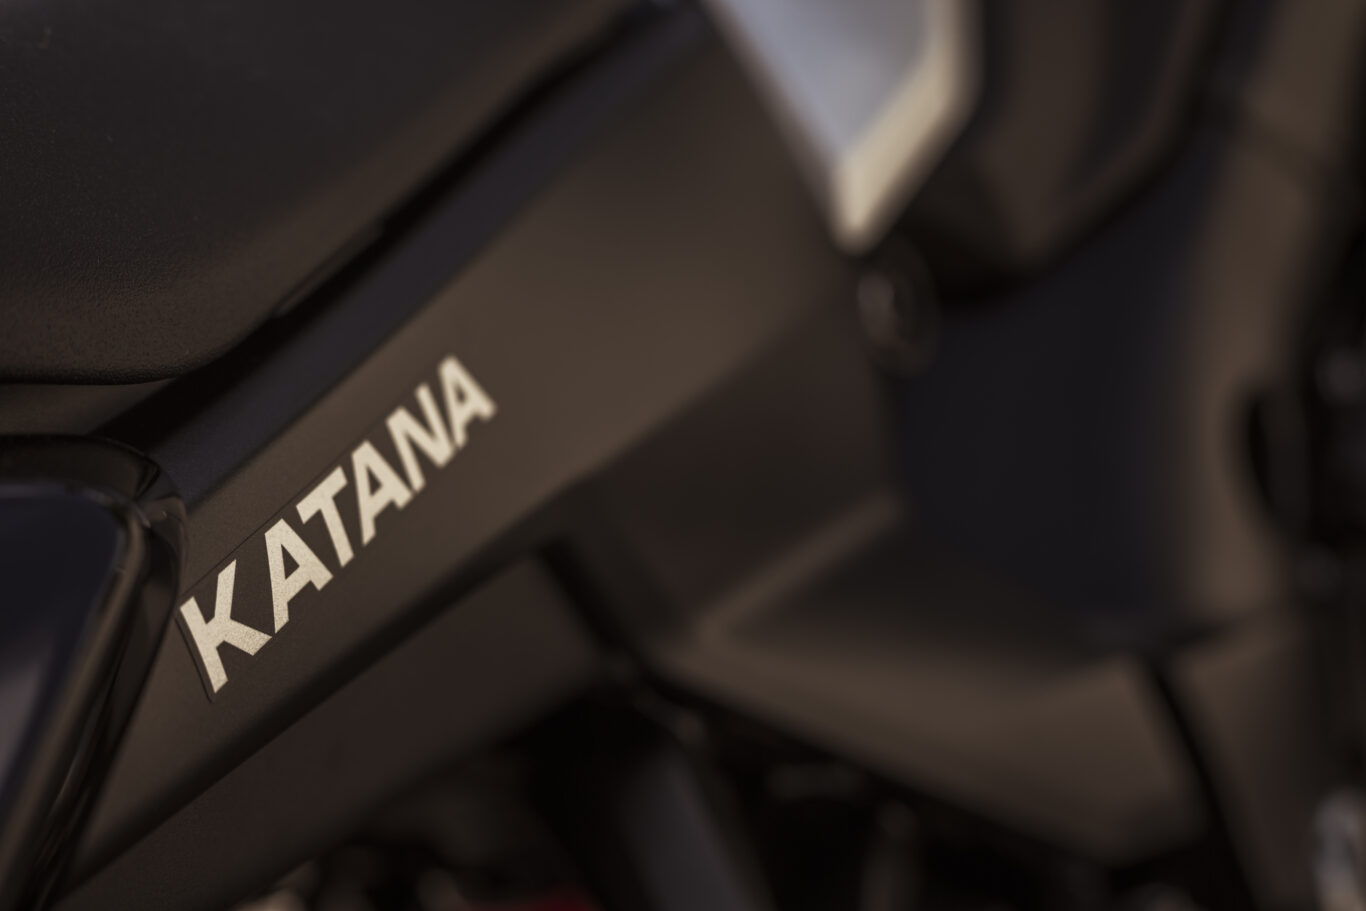 The Katana name first appeared in the 1980s